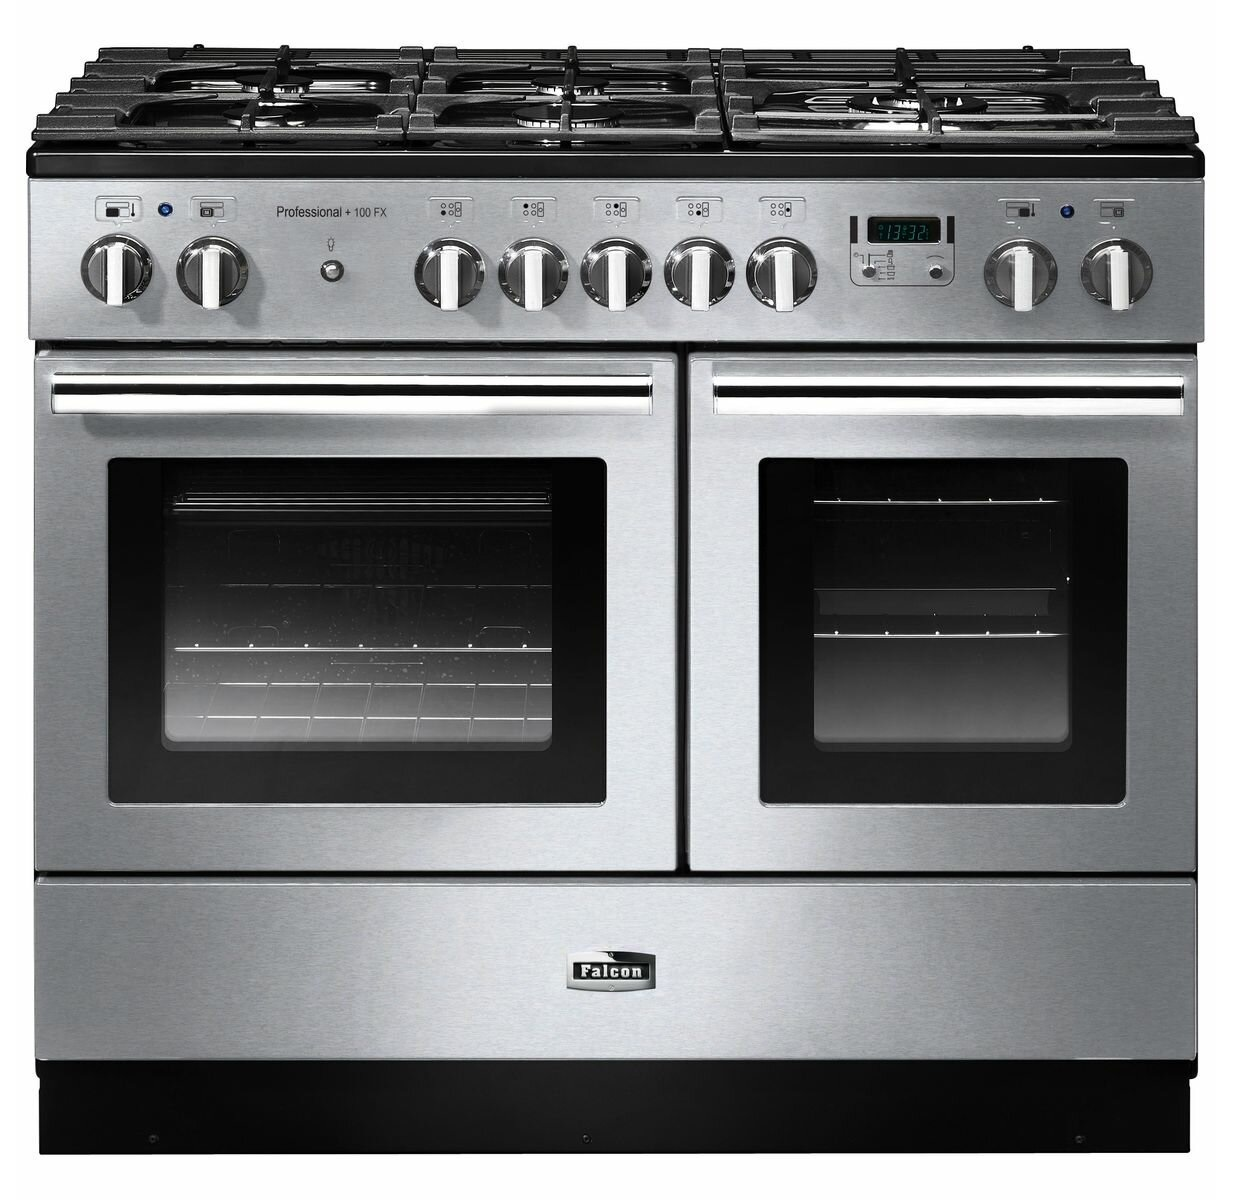 Falcon PROPL100FXDFSS-CHLPG Oven